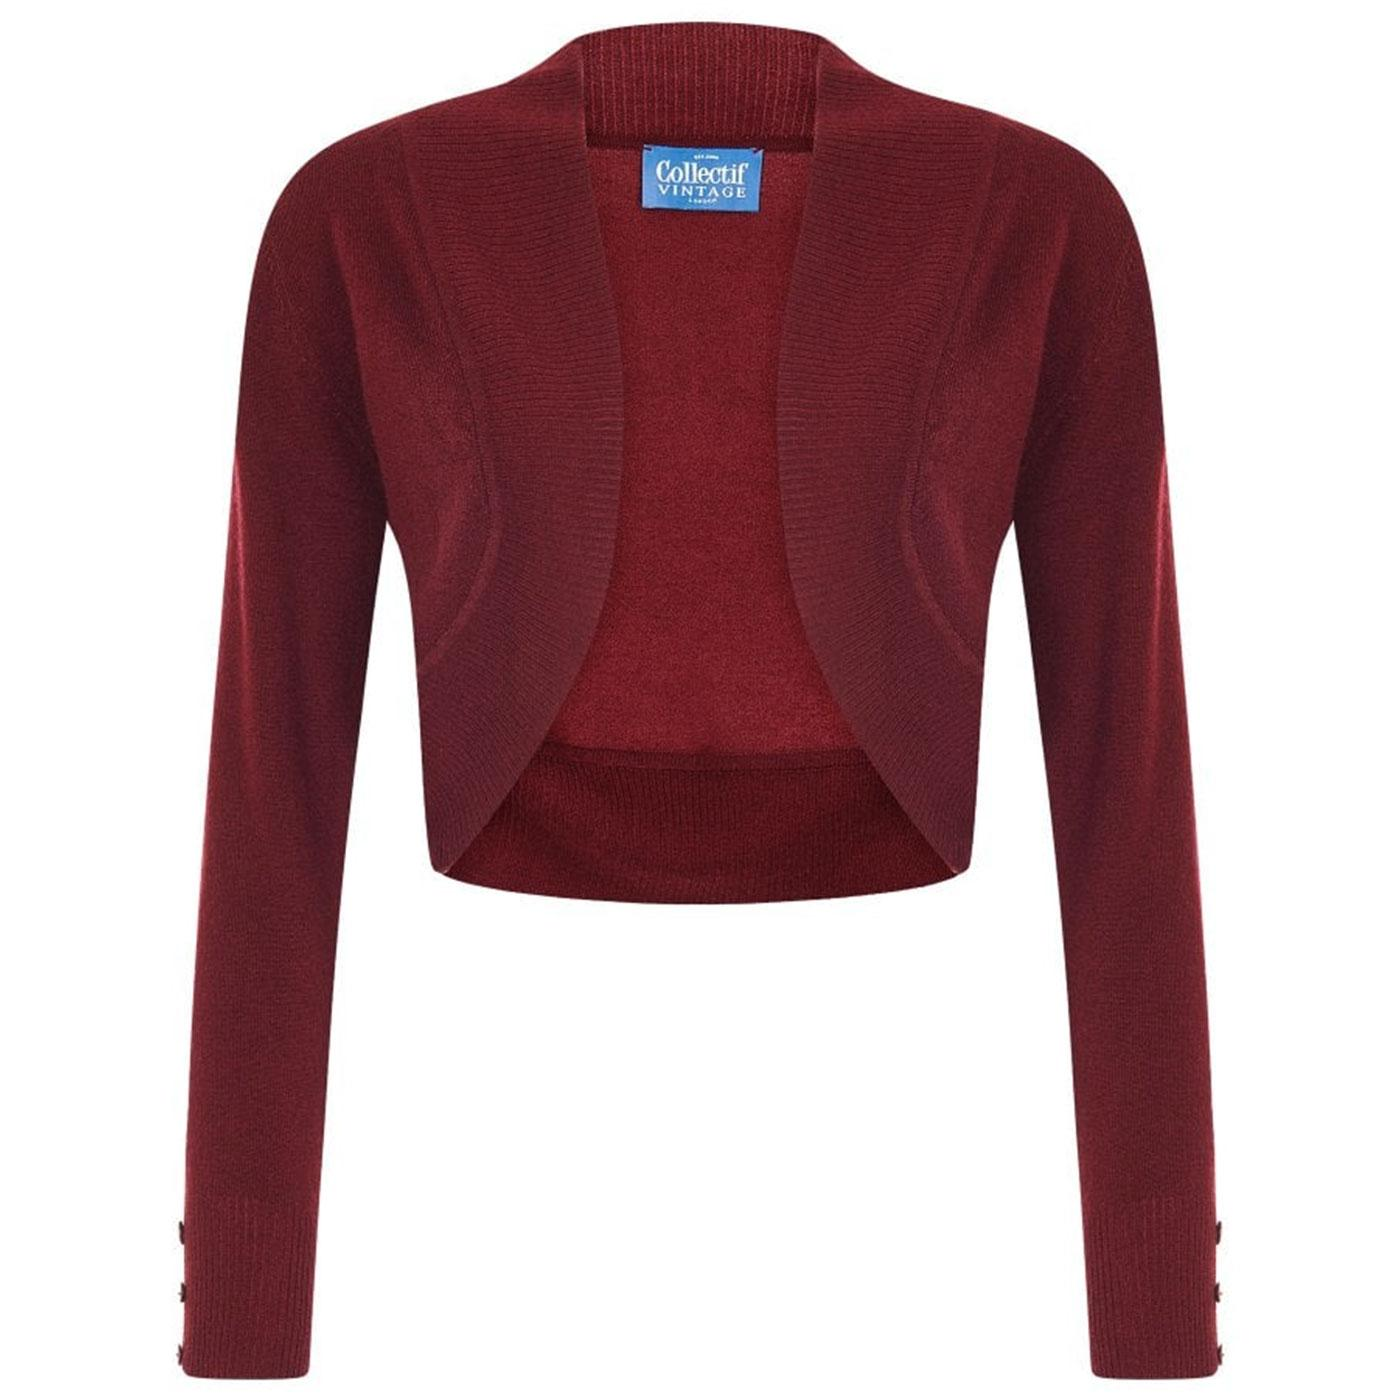 Jean COLLECTIF Vintage 50s Bolero Cardigan in Wine